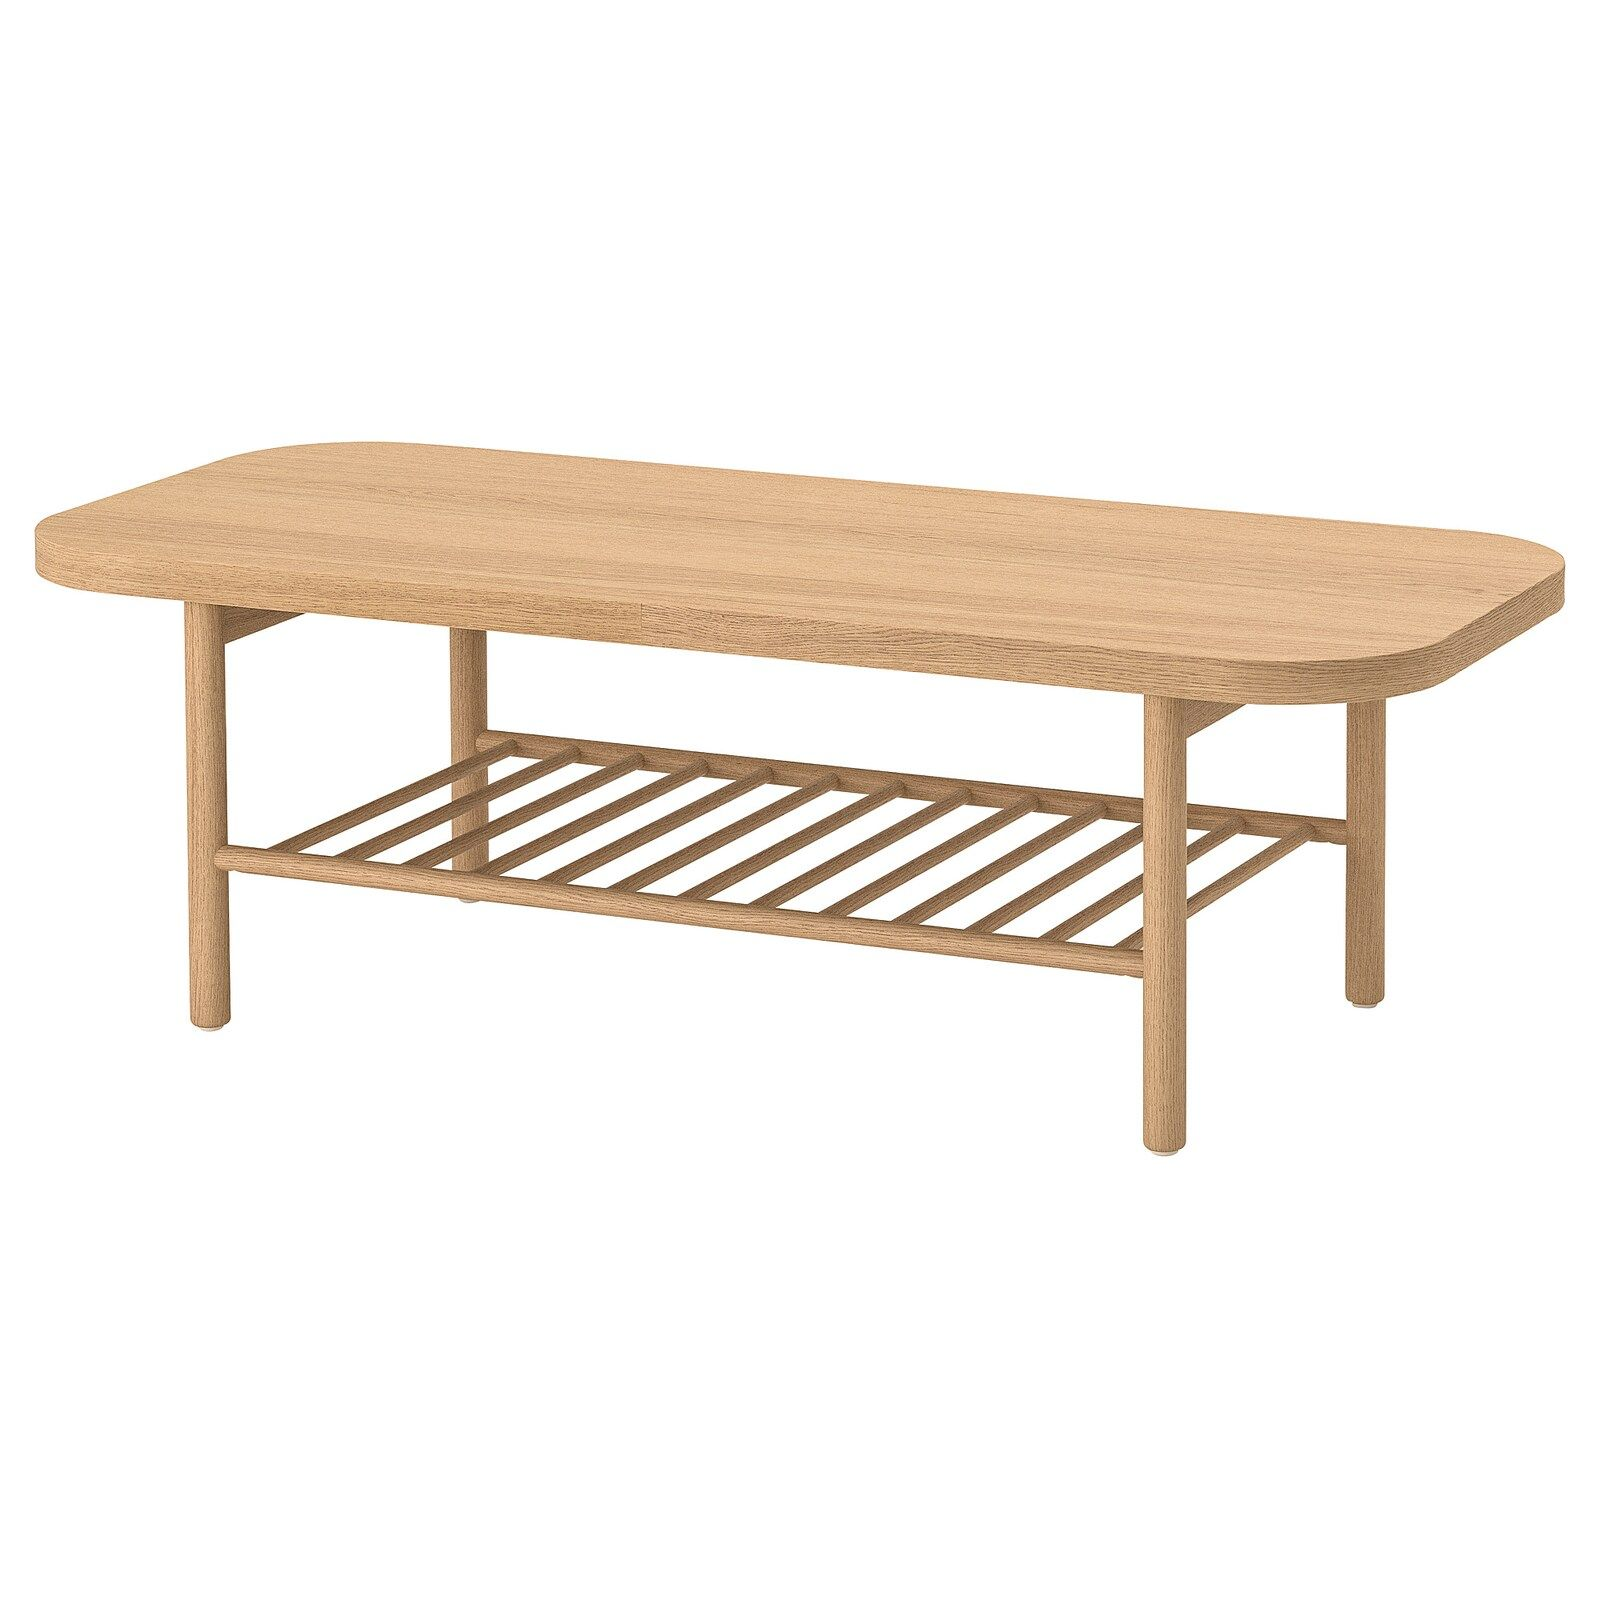 Listerby Coffee Table White Stained Oak 55 1 8x23 5 8 Ikea In 2020 Coffee Table White Ikea Coffee Table Oak Coffee Table [ 1600 x 1600 Pixel ]